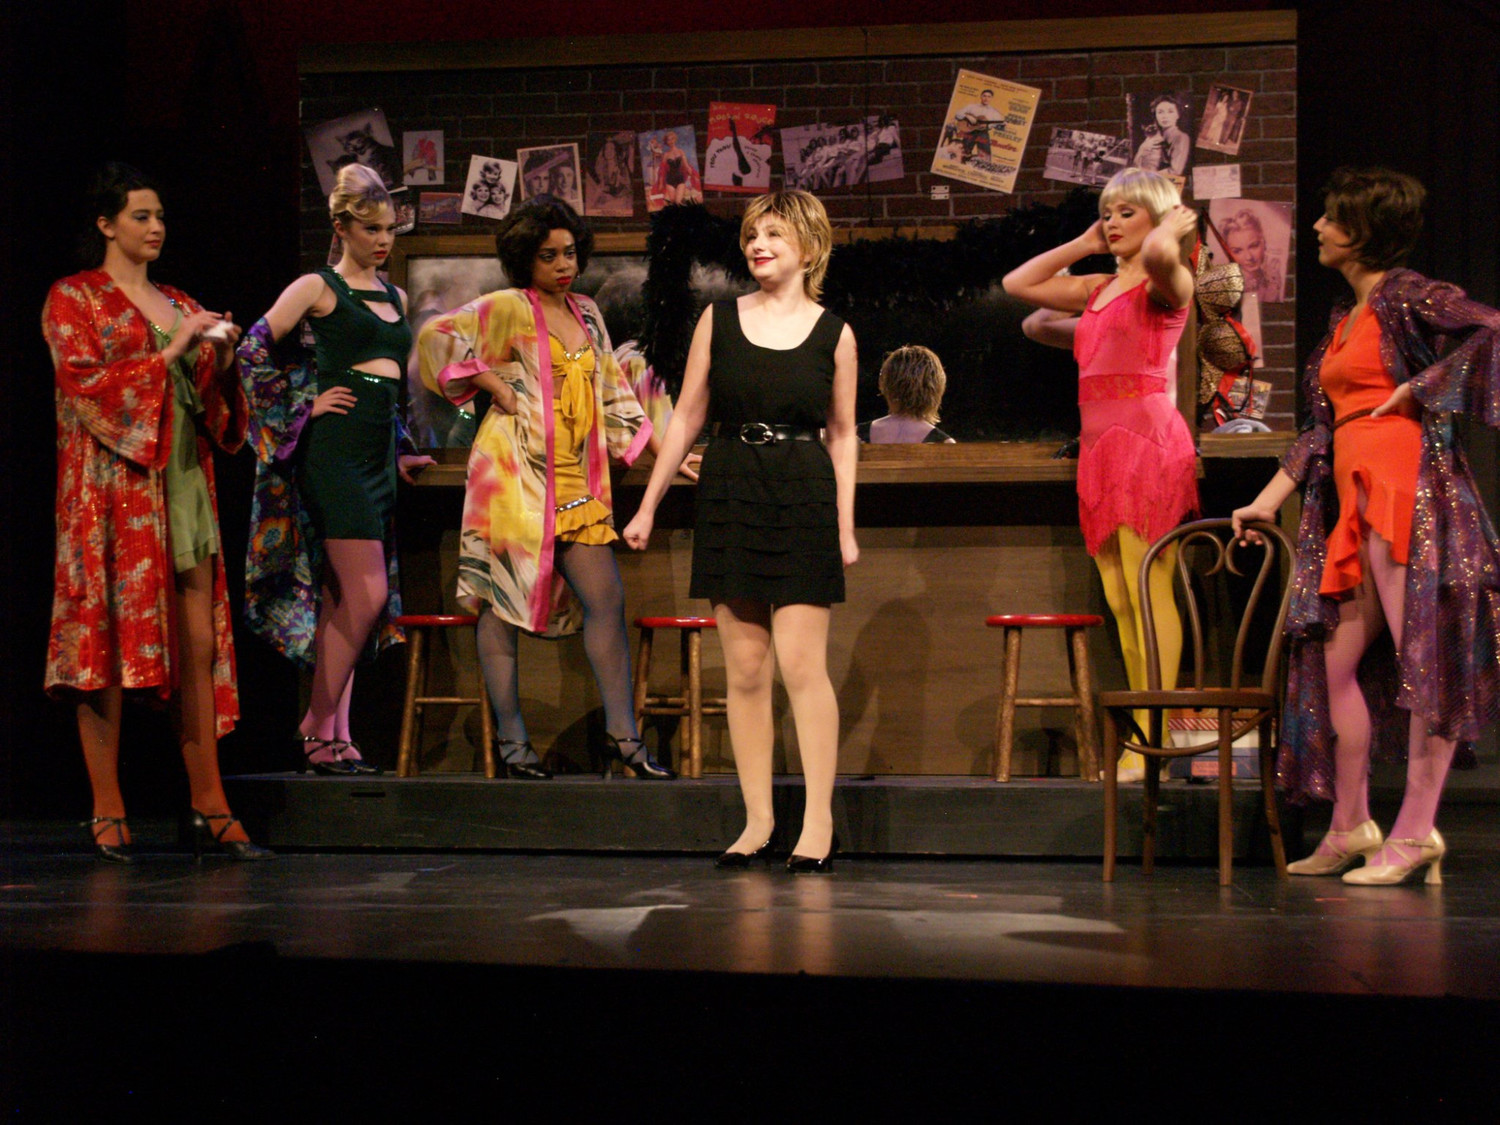 BWW Spotlight/Review: SWEET CHARITY at The Hartt School Of The University Of Hartford